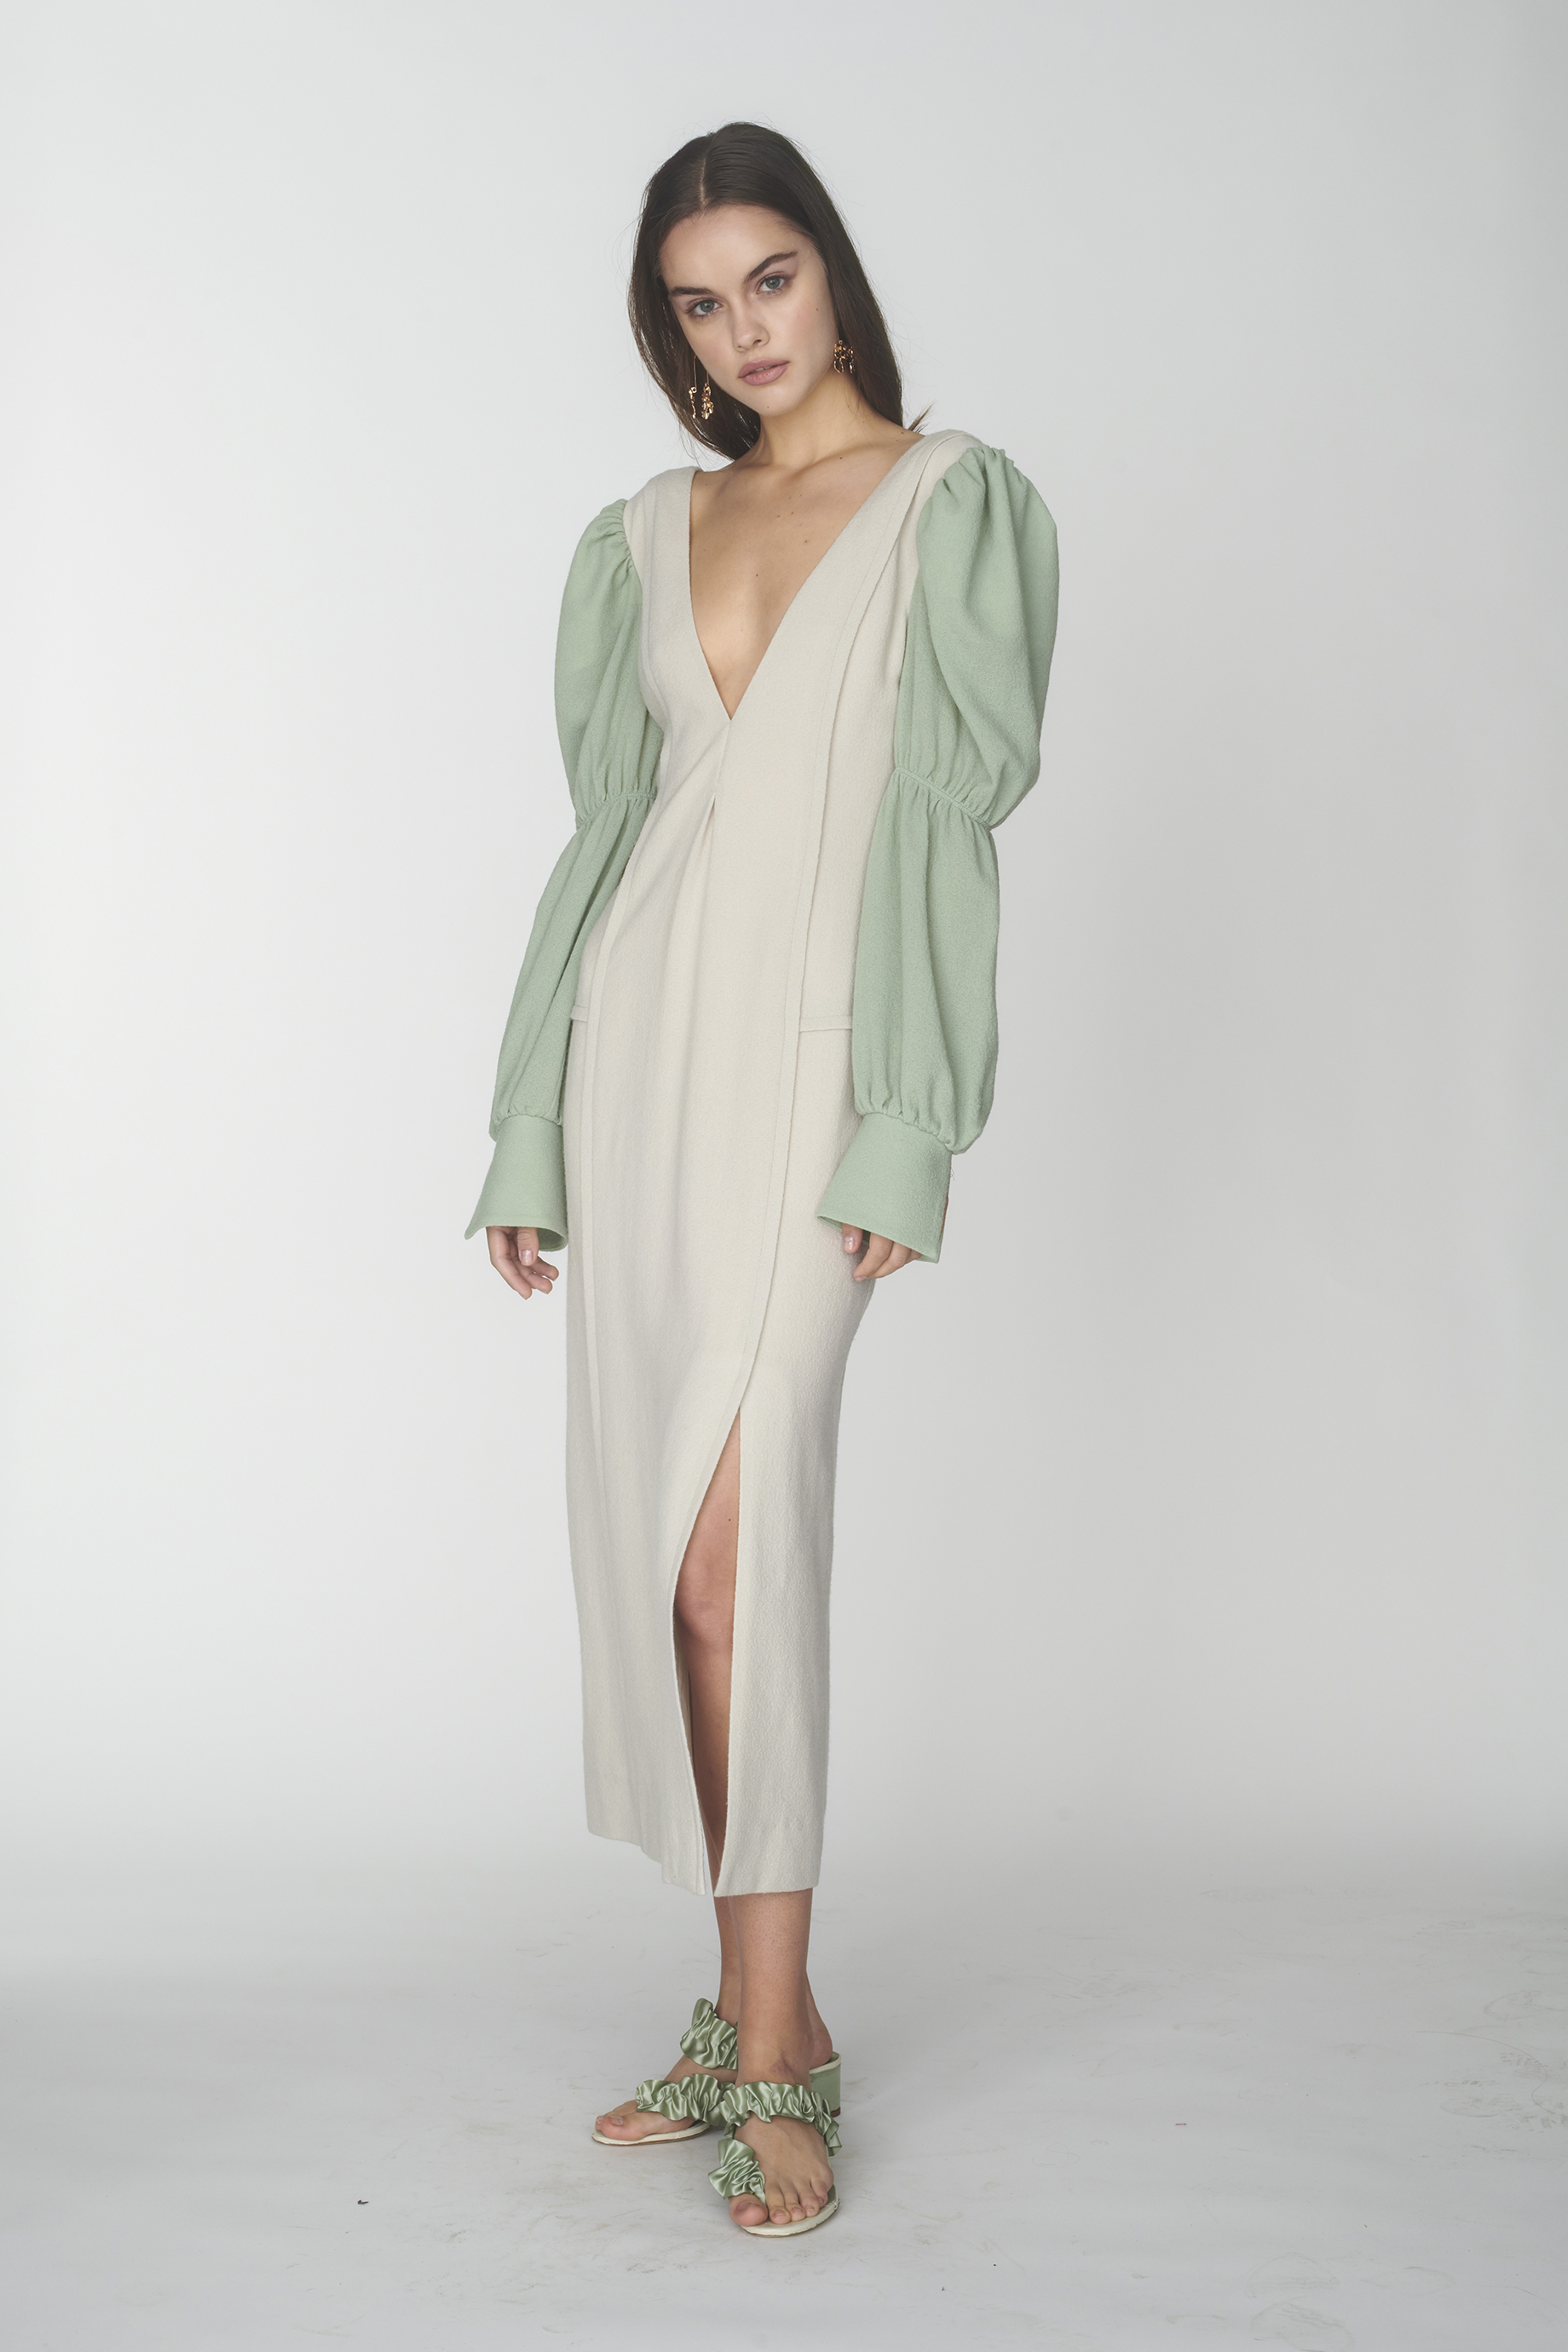 Deep V-neck dress with puffy sleeves